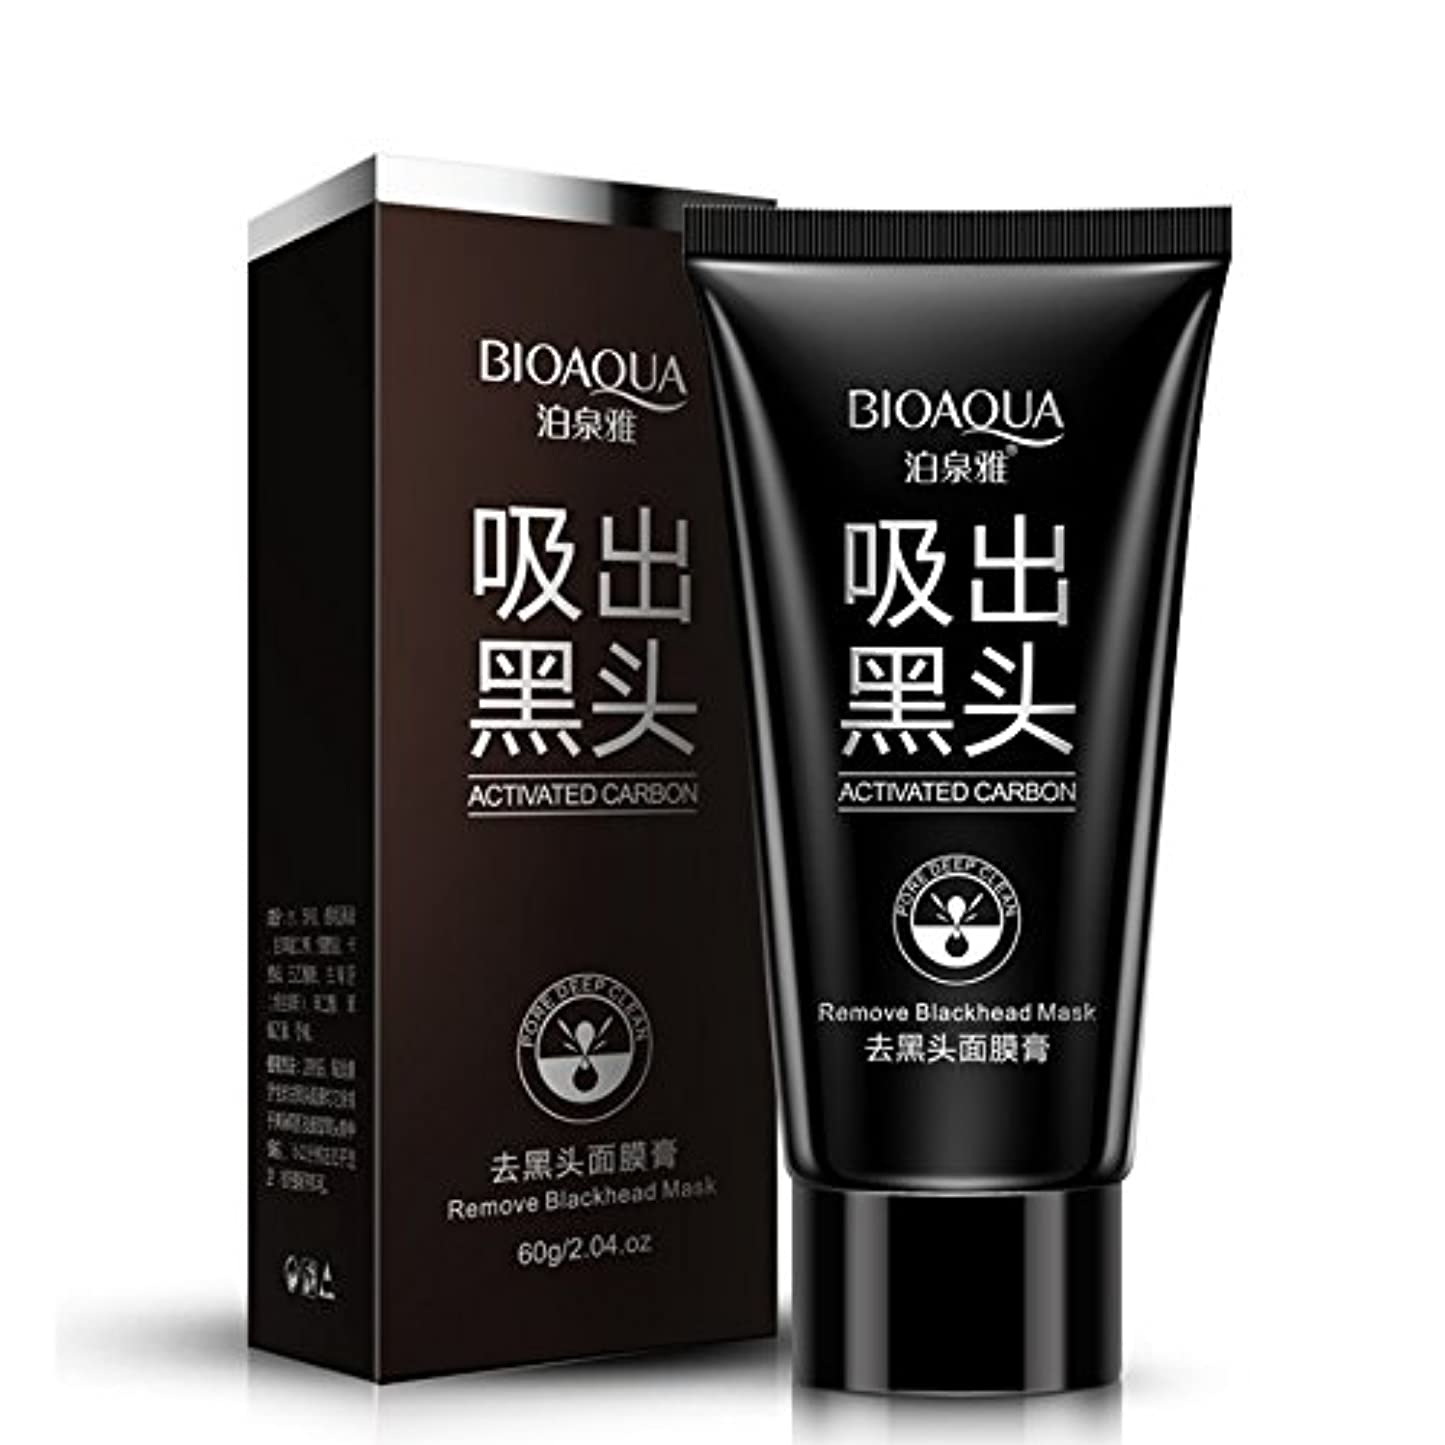 補体側面編集者Suction Black Mask Shrink Black Head Spots Pores,Face Mask Blackhead Removal Blackheads Cosmetics Facials Moisturizing...